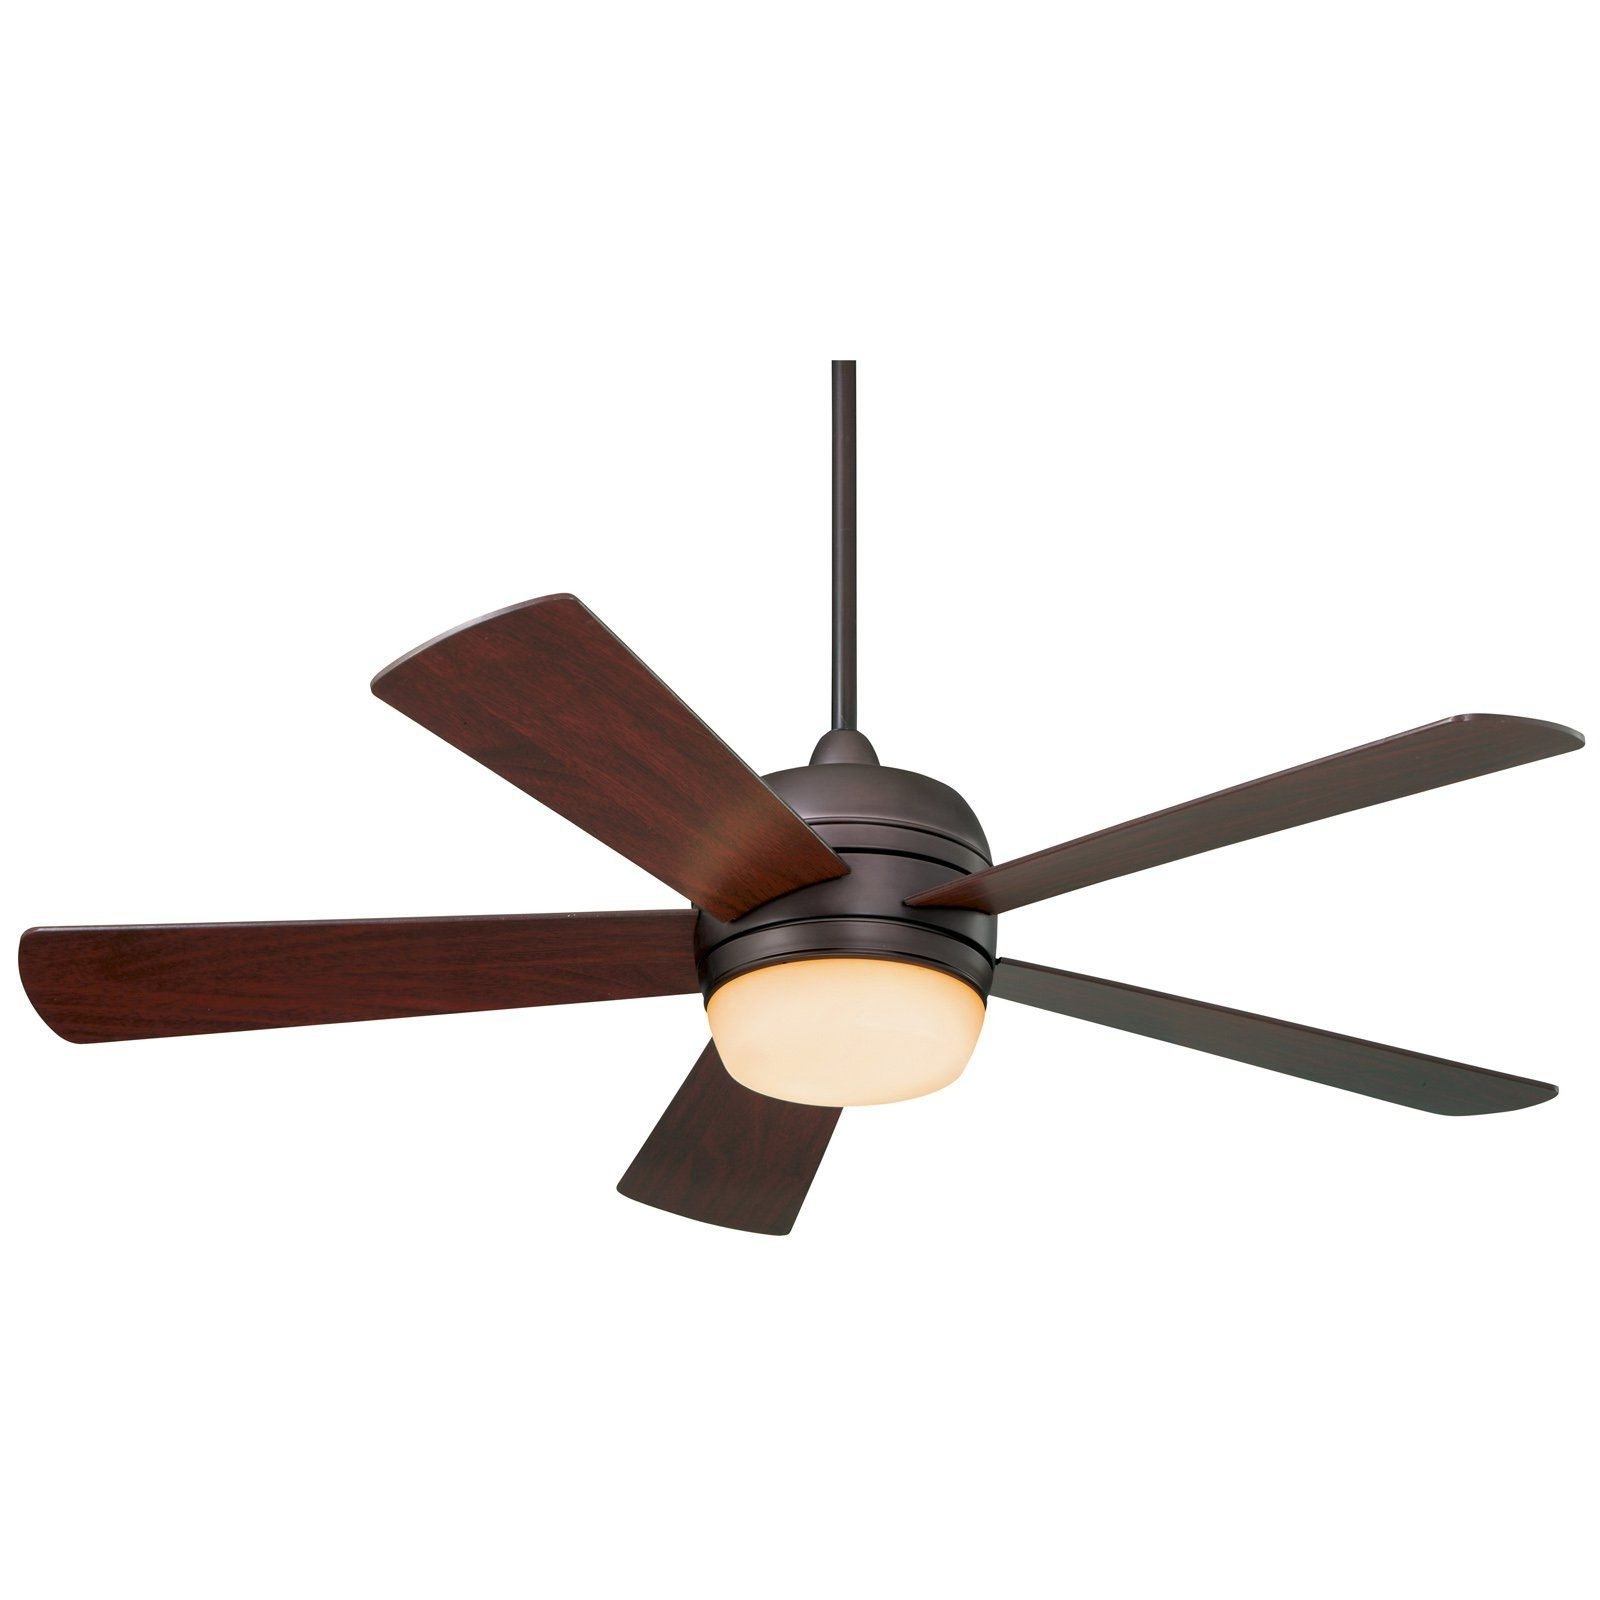 Mission Style Outdoor Ceiling Fans With Lights Regarding Most Recently Released Emerson 52 In. Atomical Indoor/outdoor Ceiling Fan – The Emerson 52 (Gallery 20 of 20)